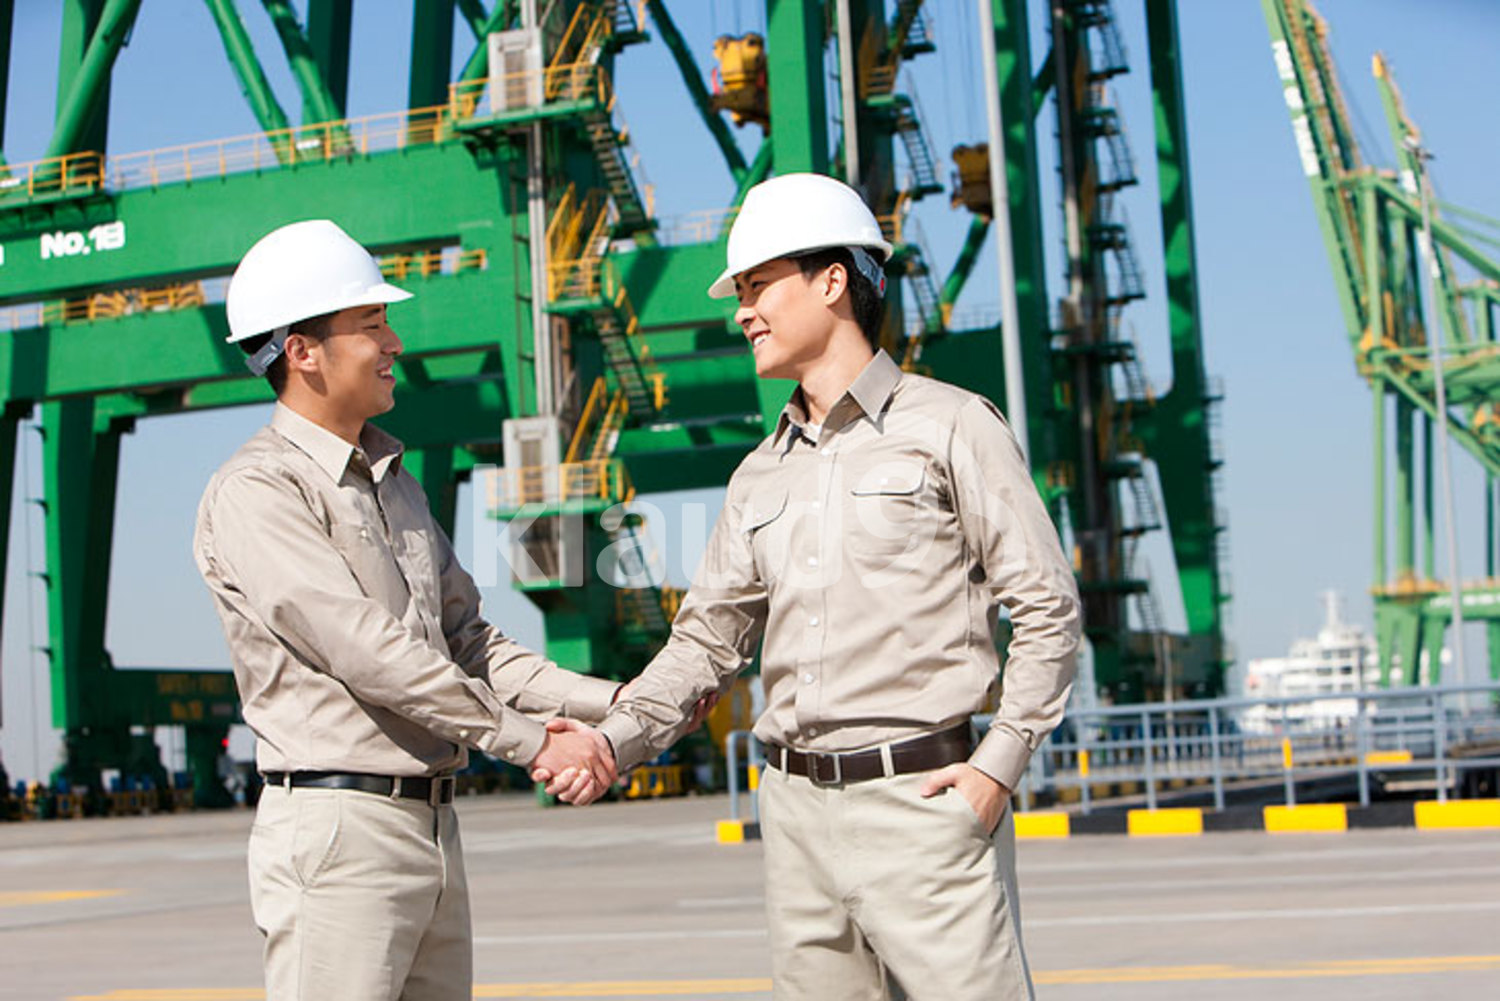 Male Chinese shipping industry workers shaking hands